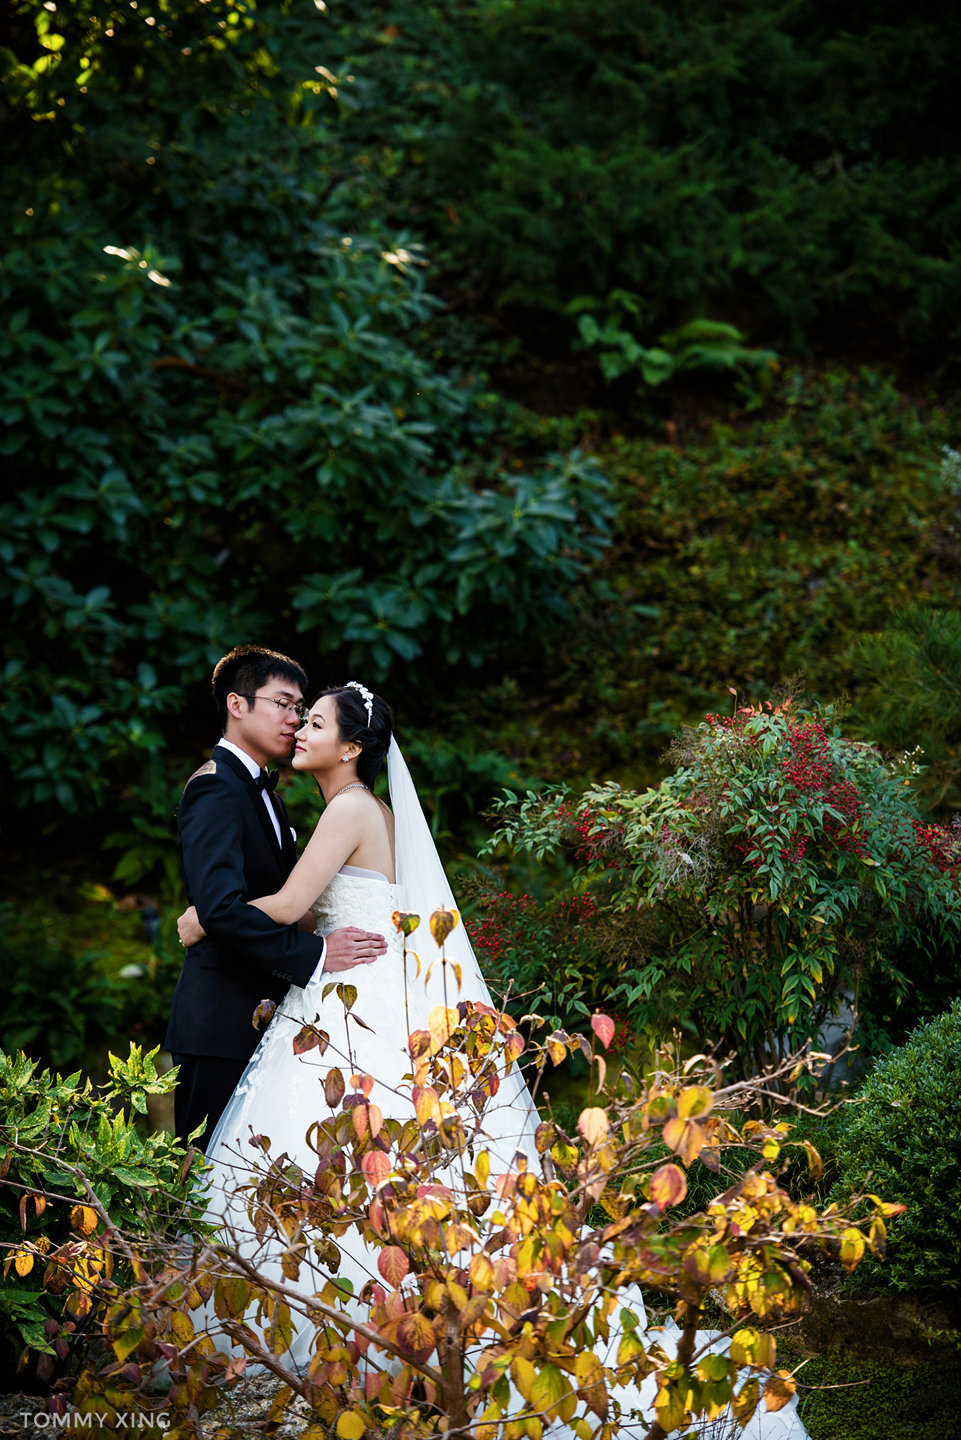 San Francisco Bay Area Chinese Pre Wedding Photographer Tommy Xing 旧金山湾区婚纱照摄影 12.jpg